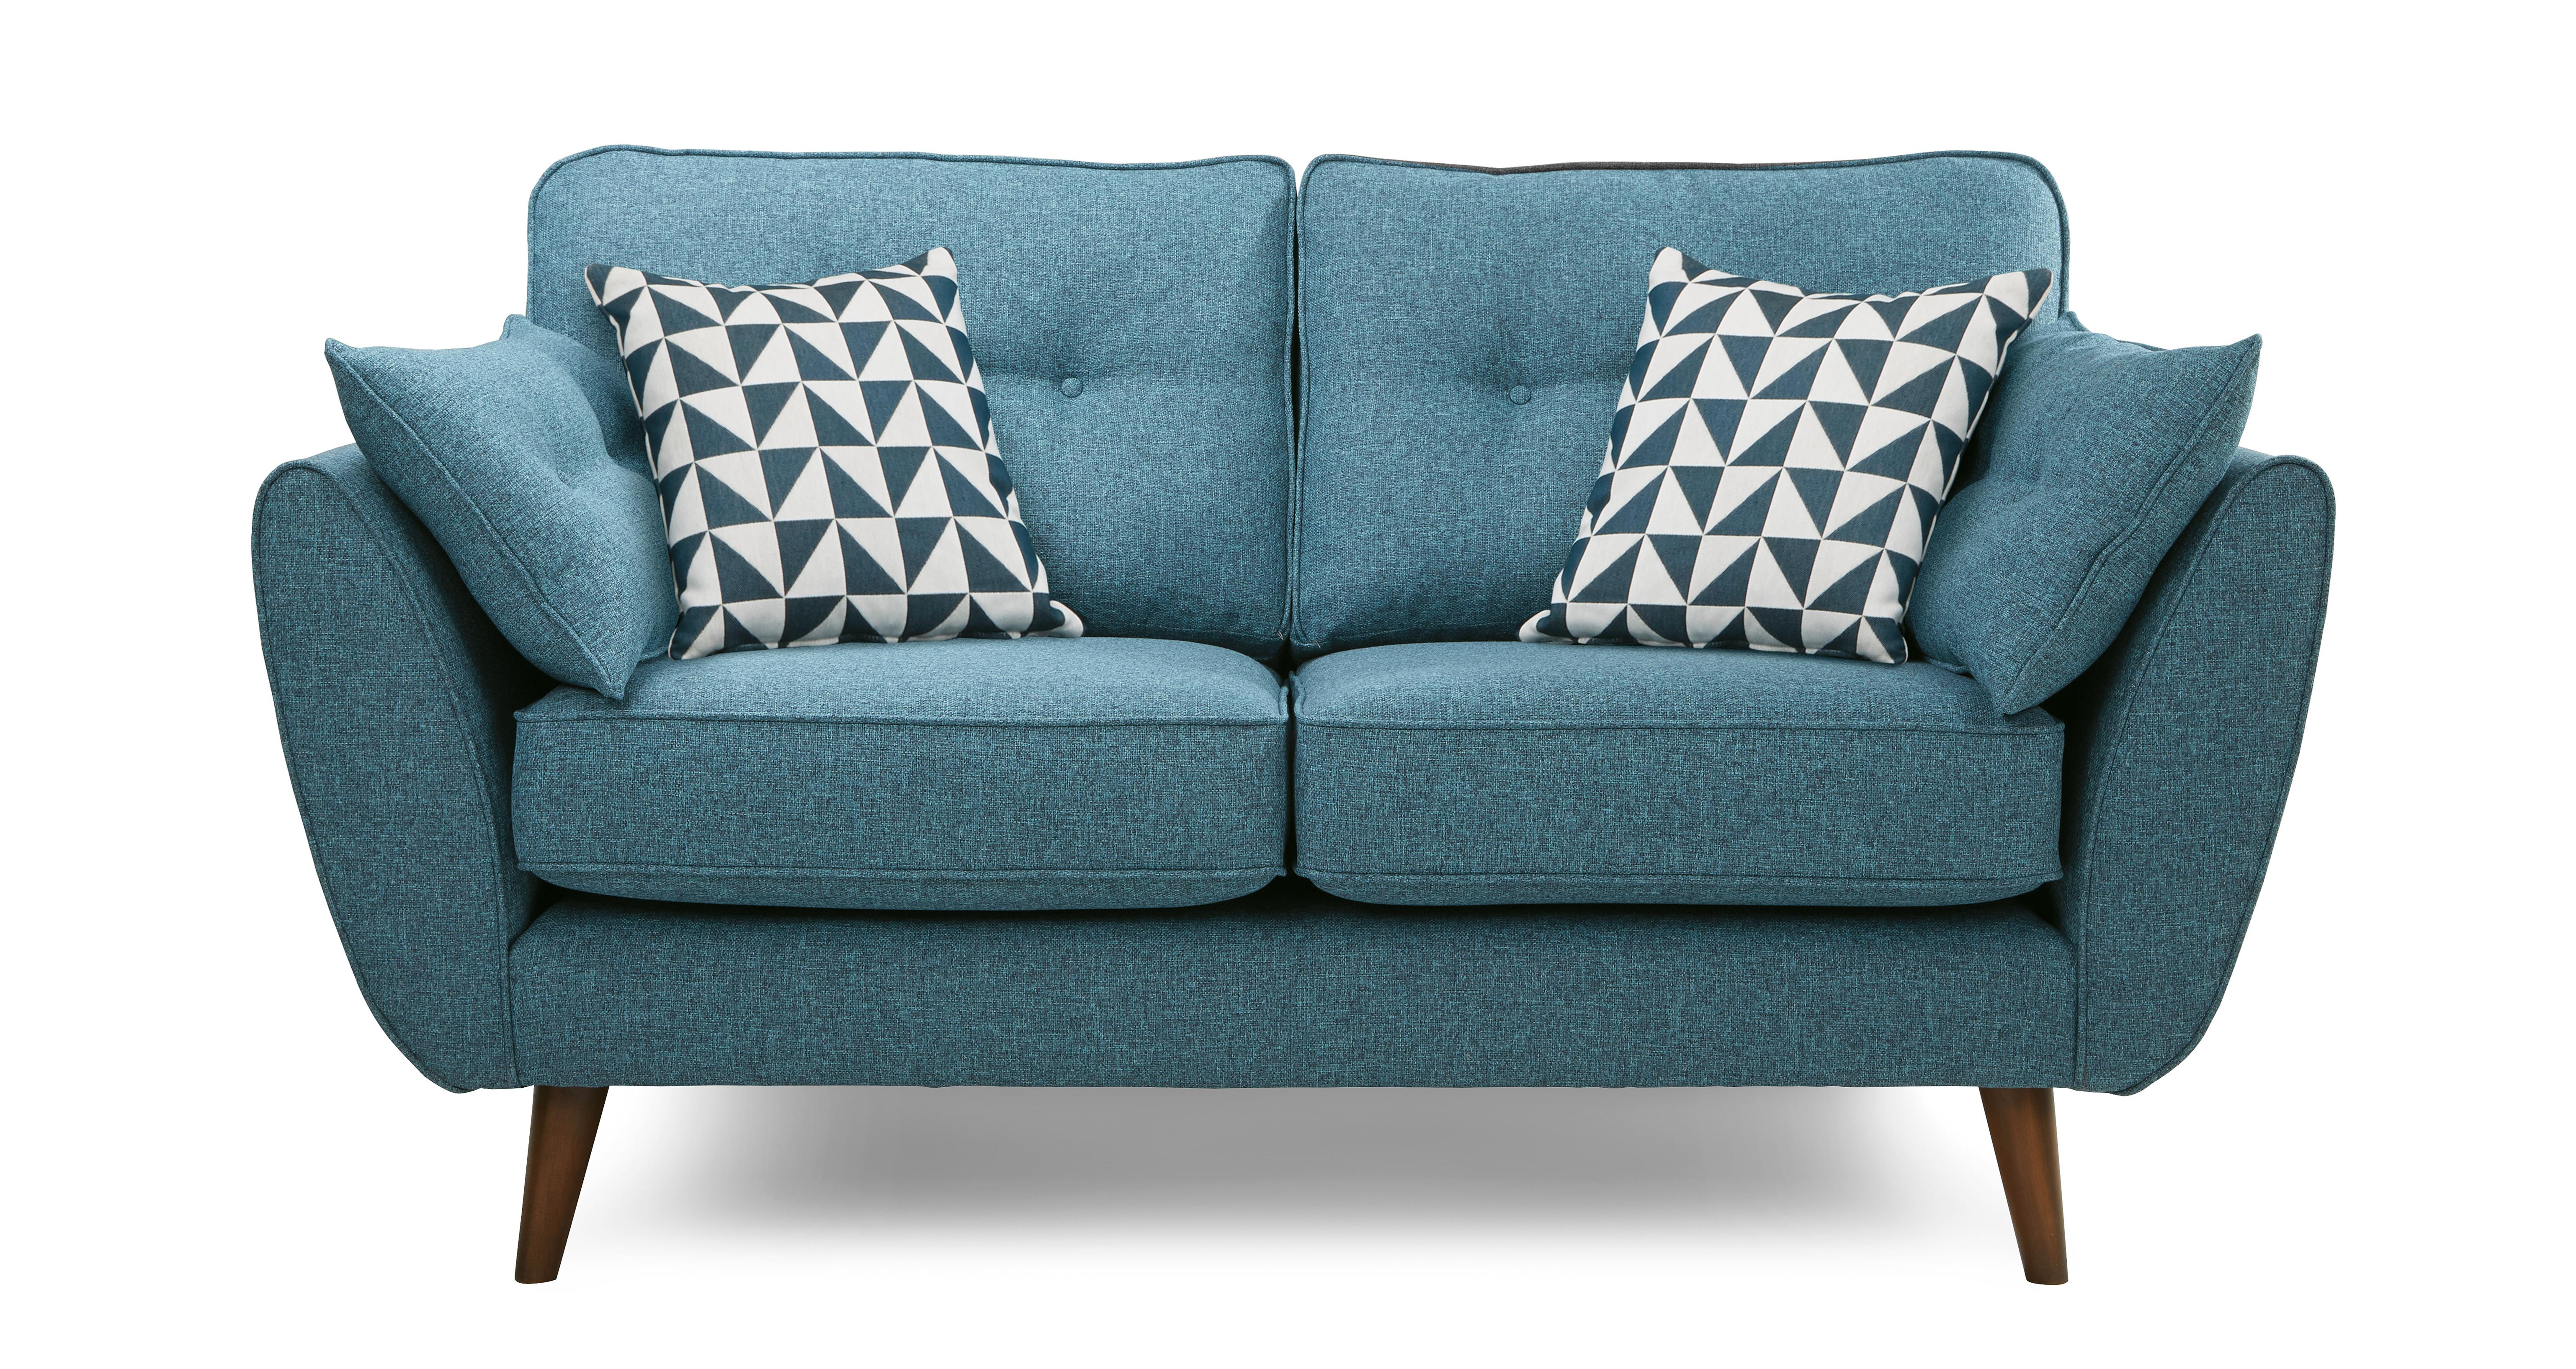 tealandbluecombination sofa french ireland dfs zinc seater couch